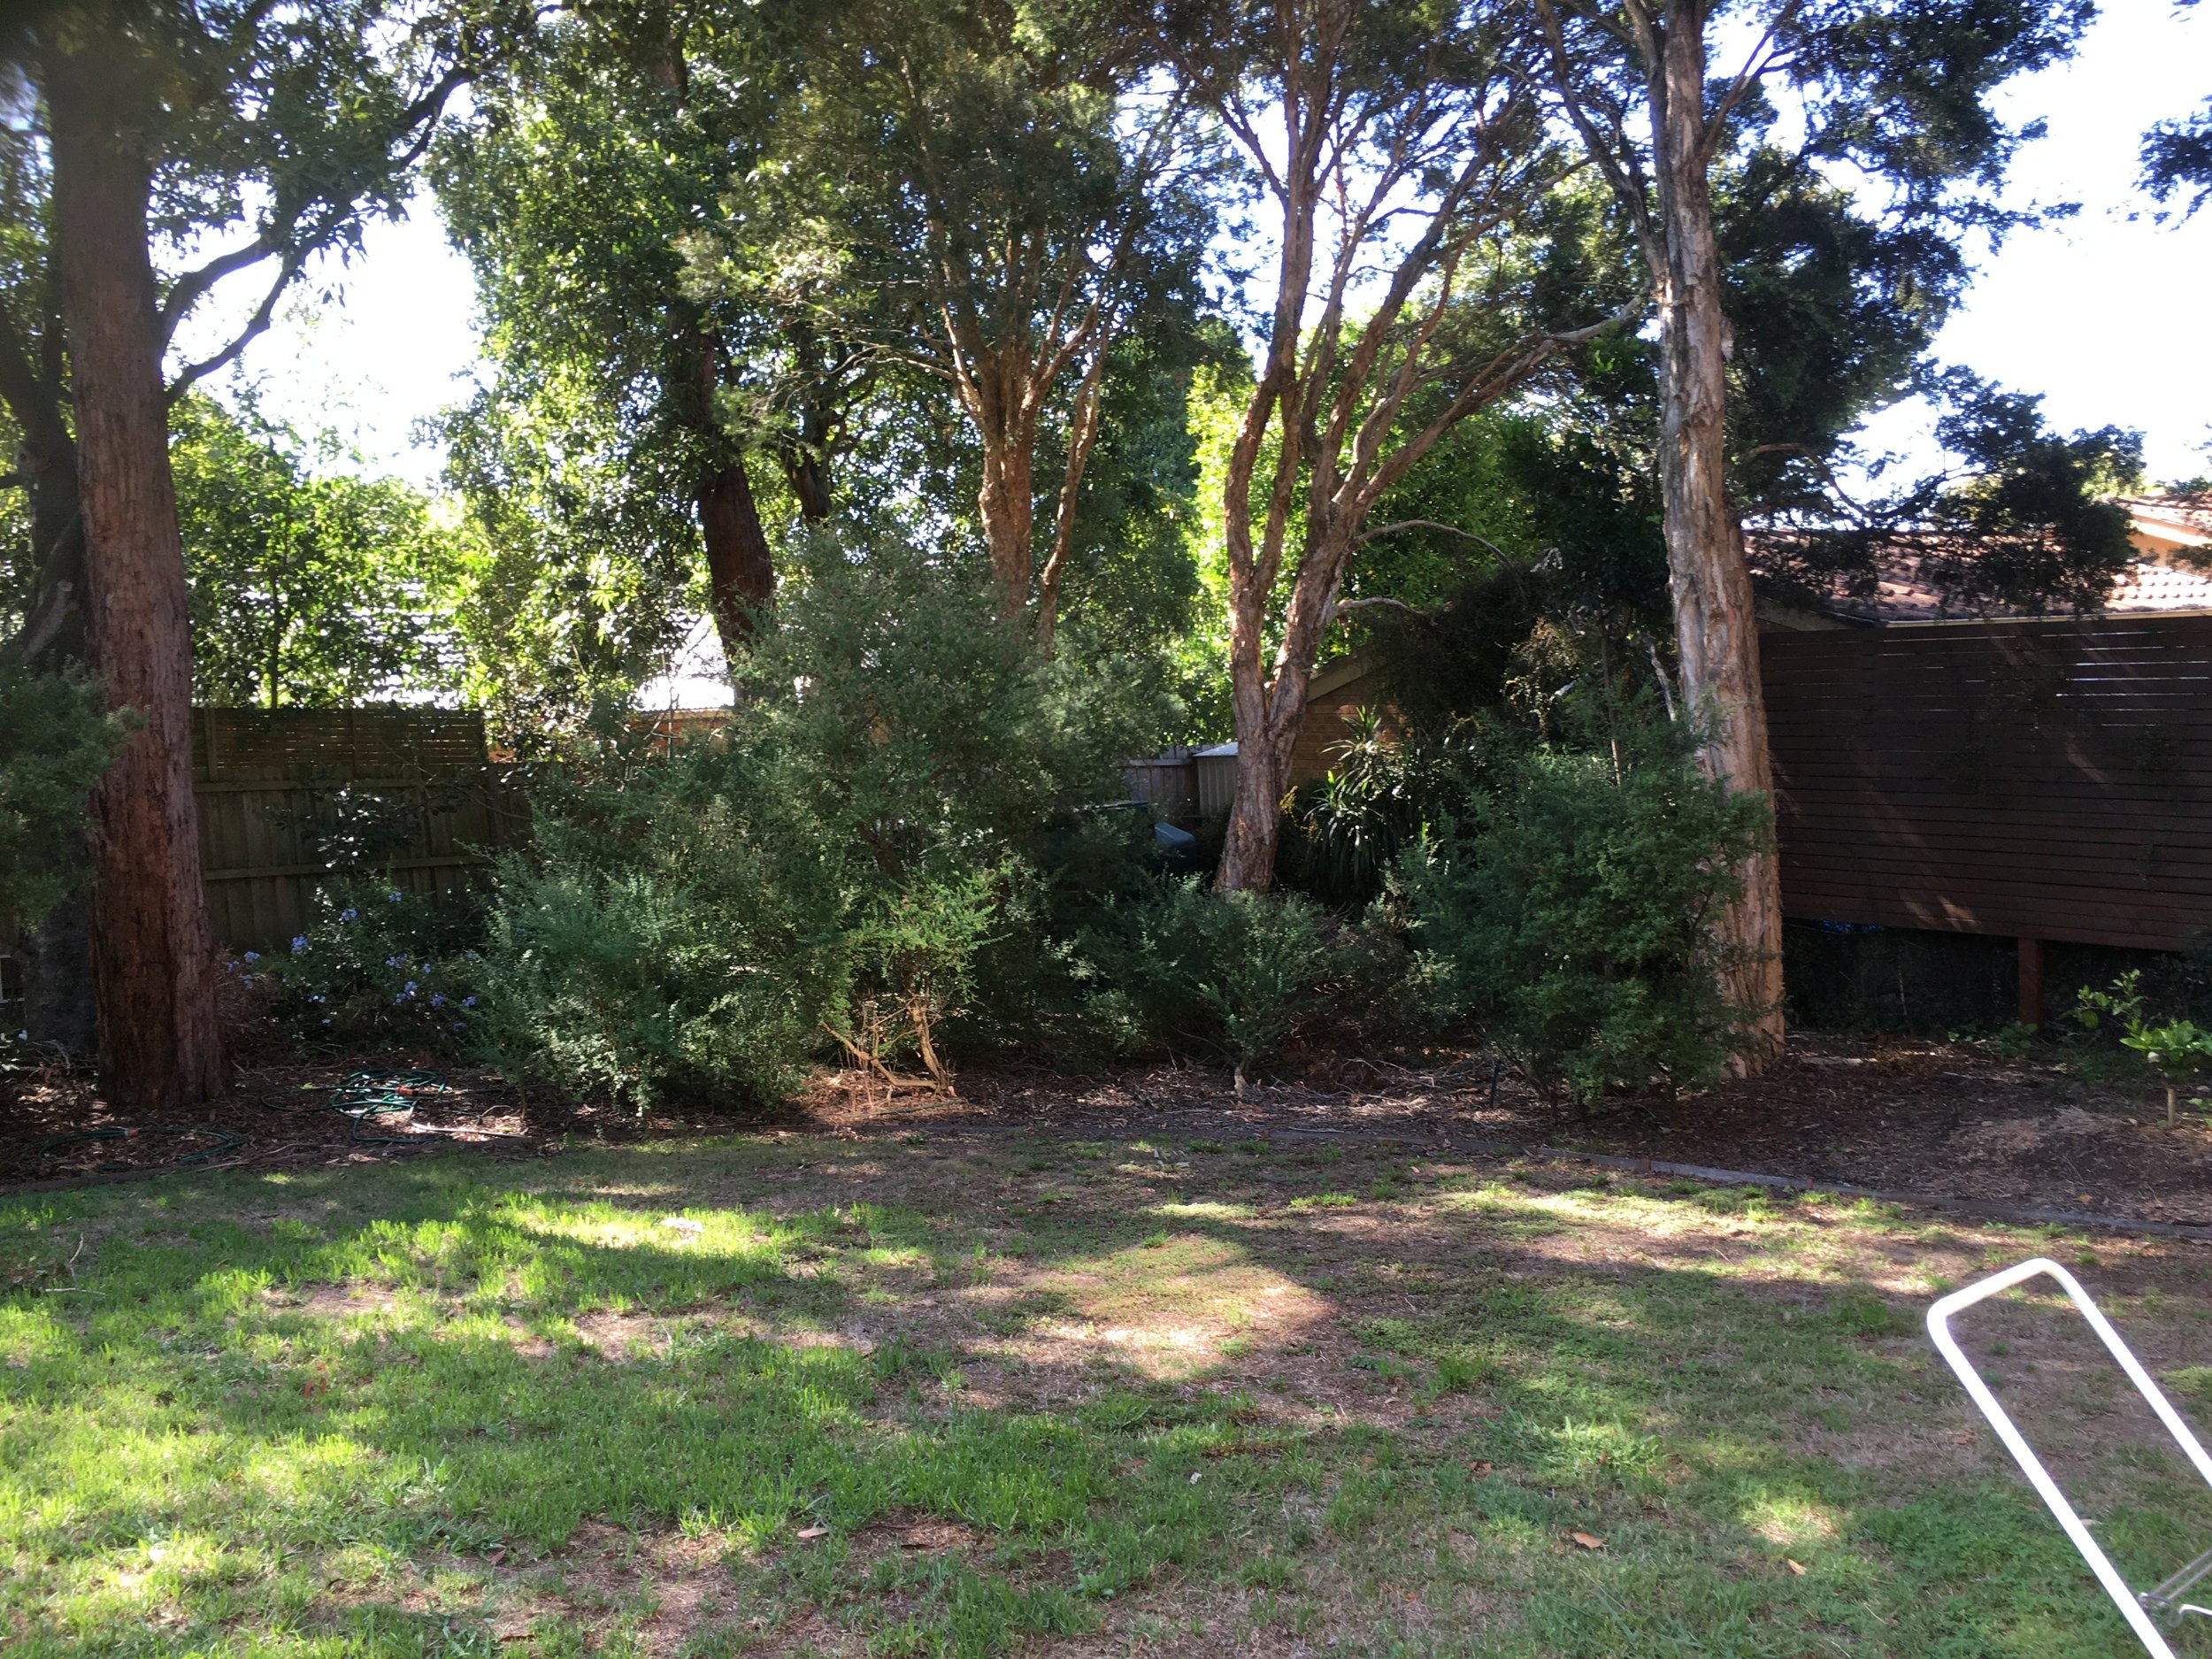 BEFORE: The rear corner of the garden had a lot of scrubby, overgrown shrubs that took up a lot of space and fought with the lawn for sunlight.